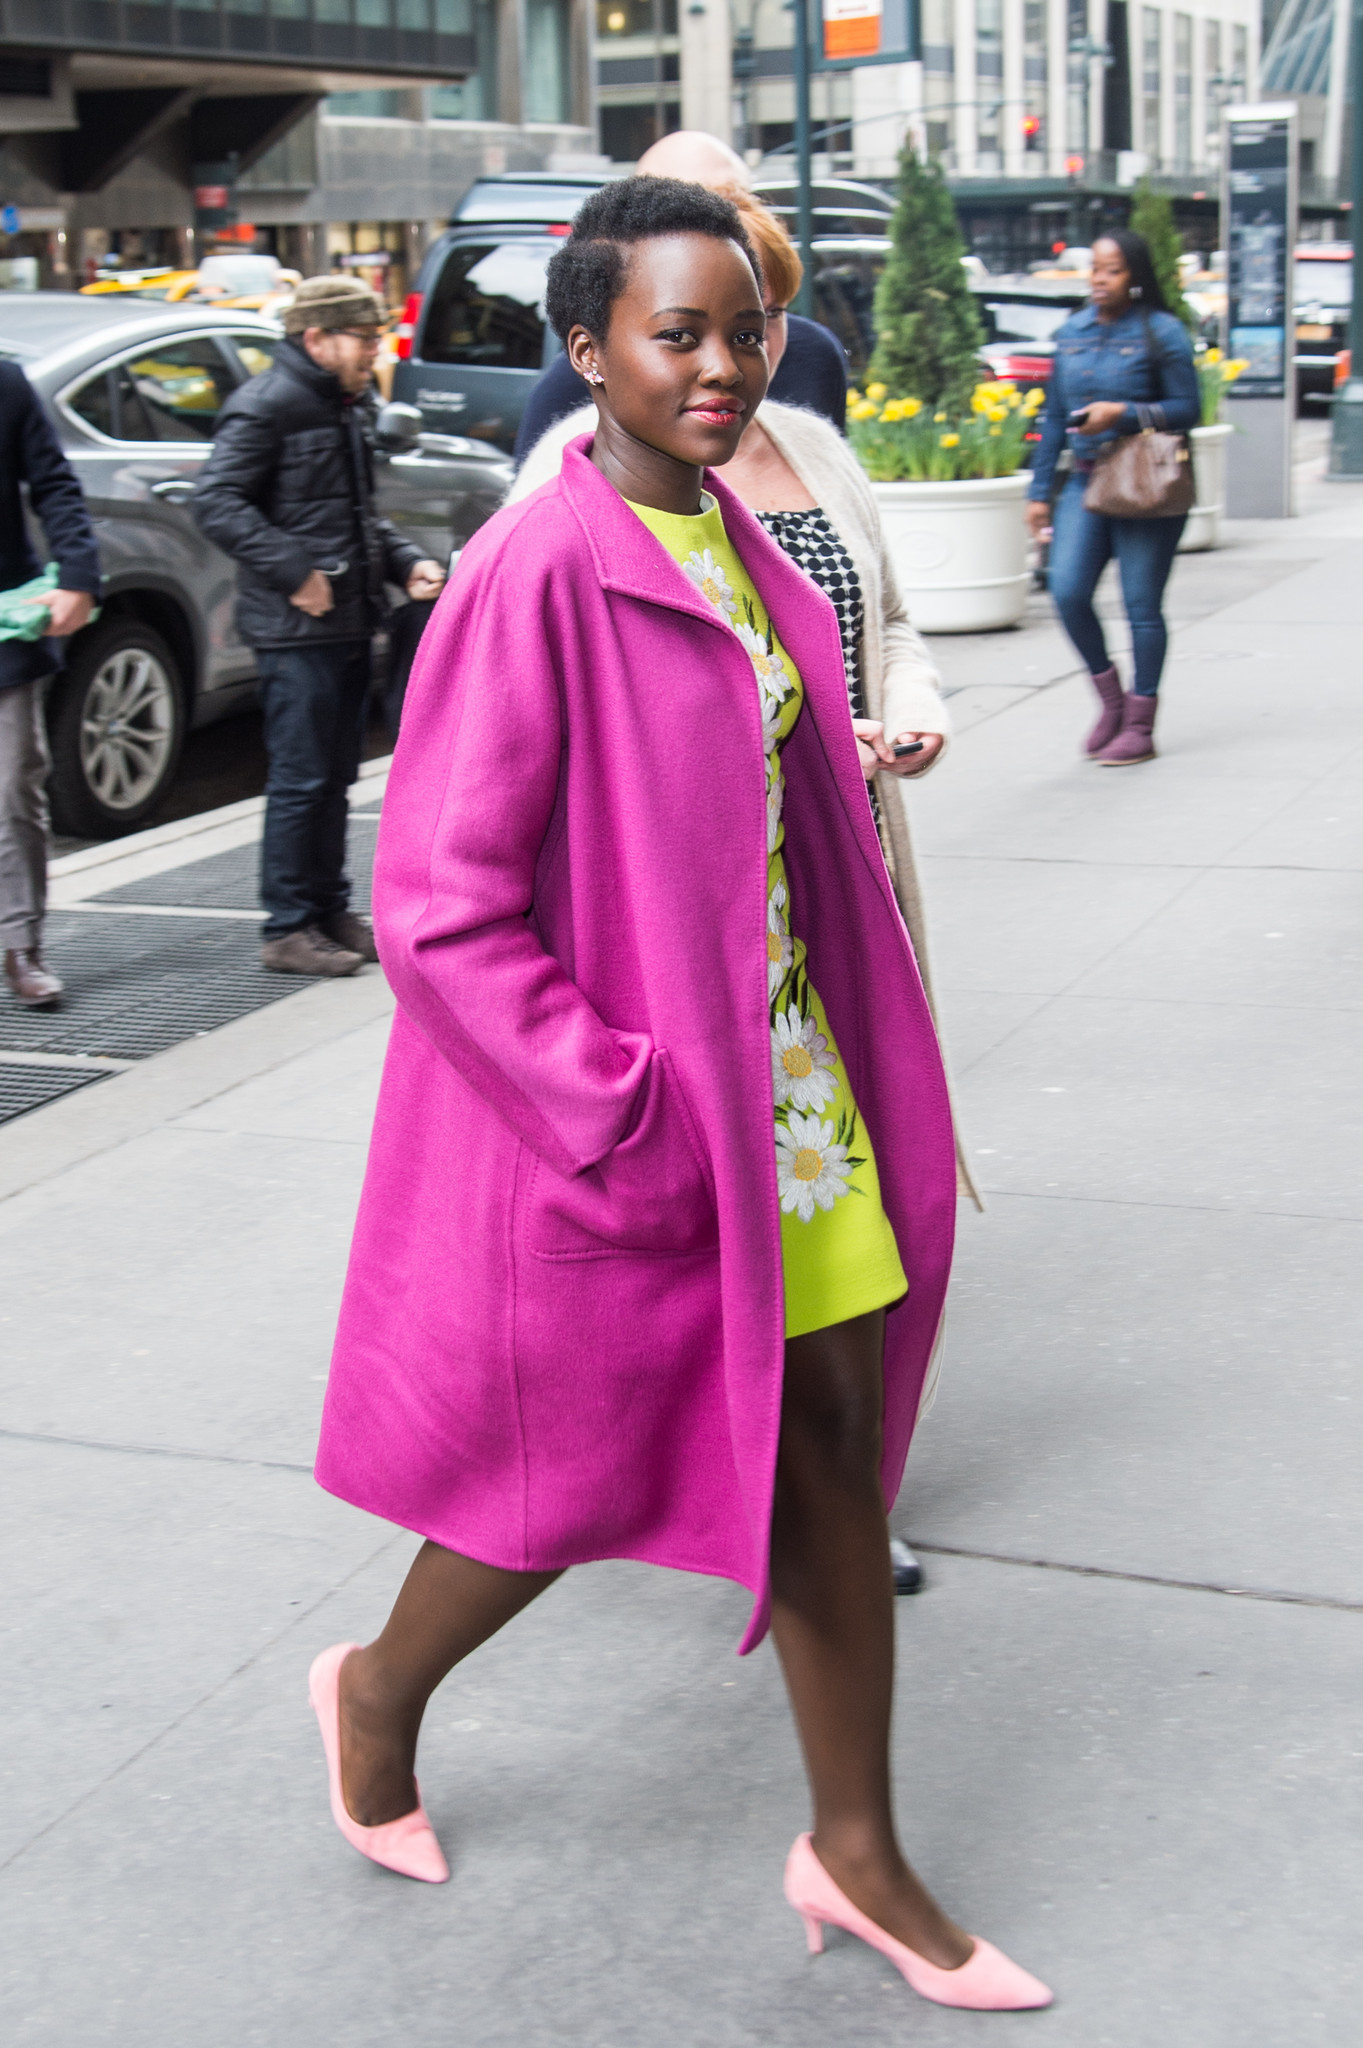 An image of actress Lupita Nyong'o wearing a Max Mara coat to Variety's Power of Women New York luncheon in April 2016 will be among those shown in the upcoming Max Mara photo exhibition.